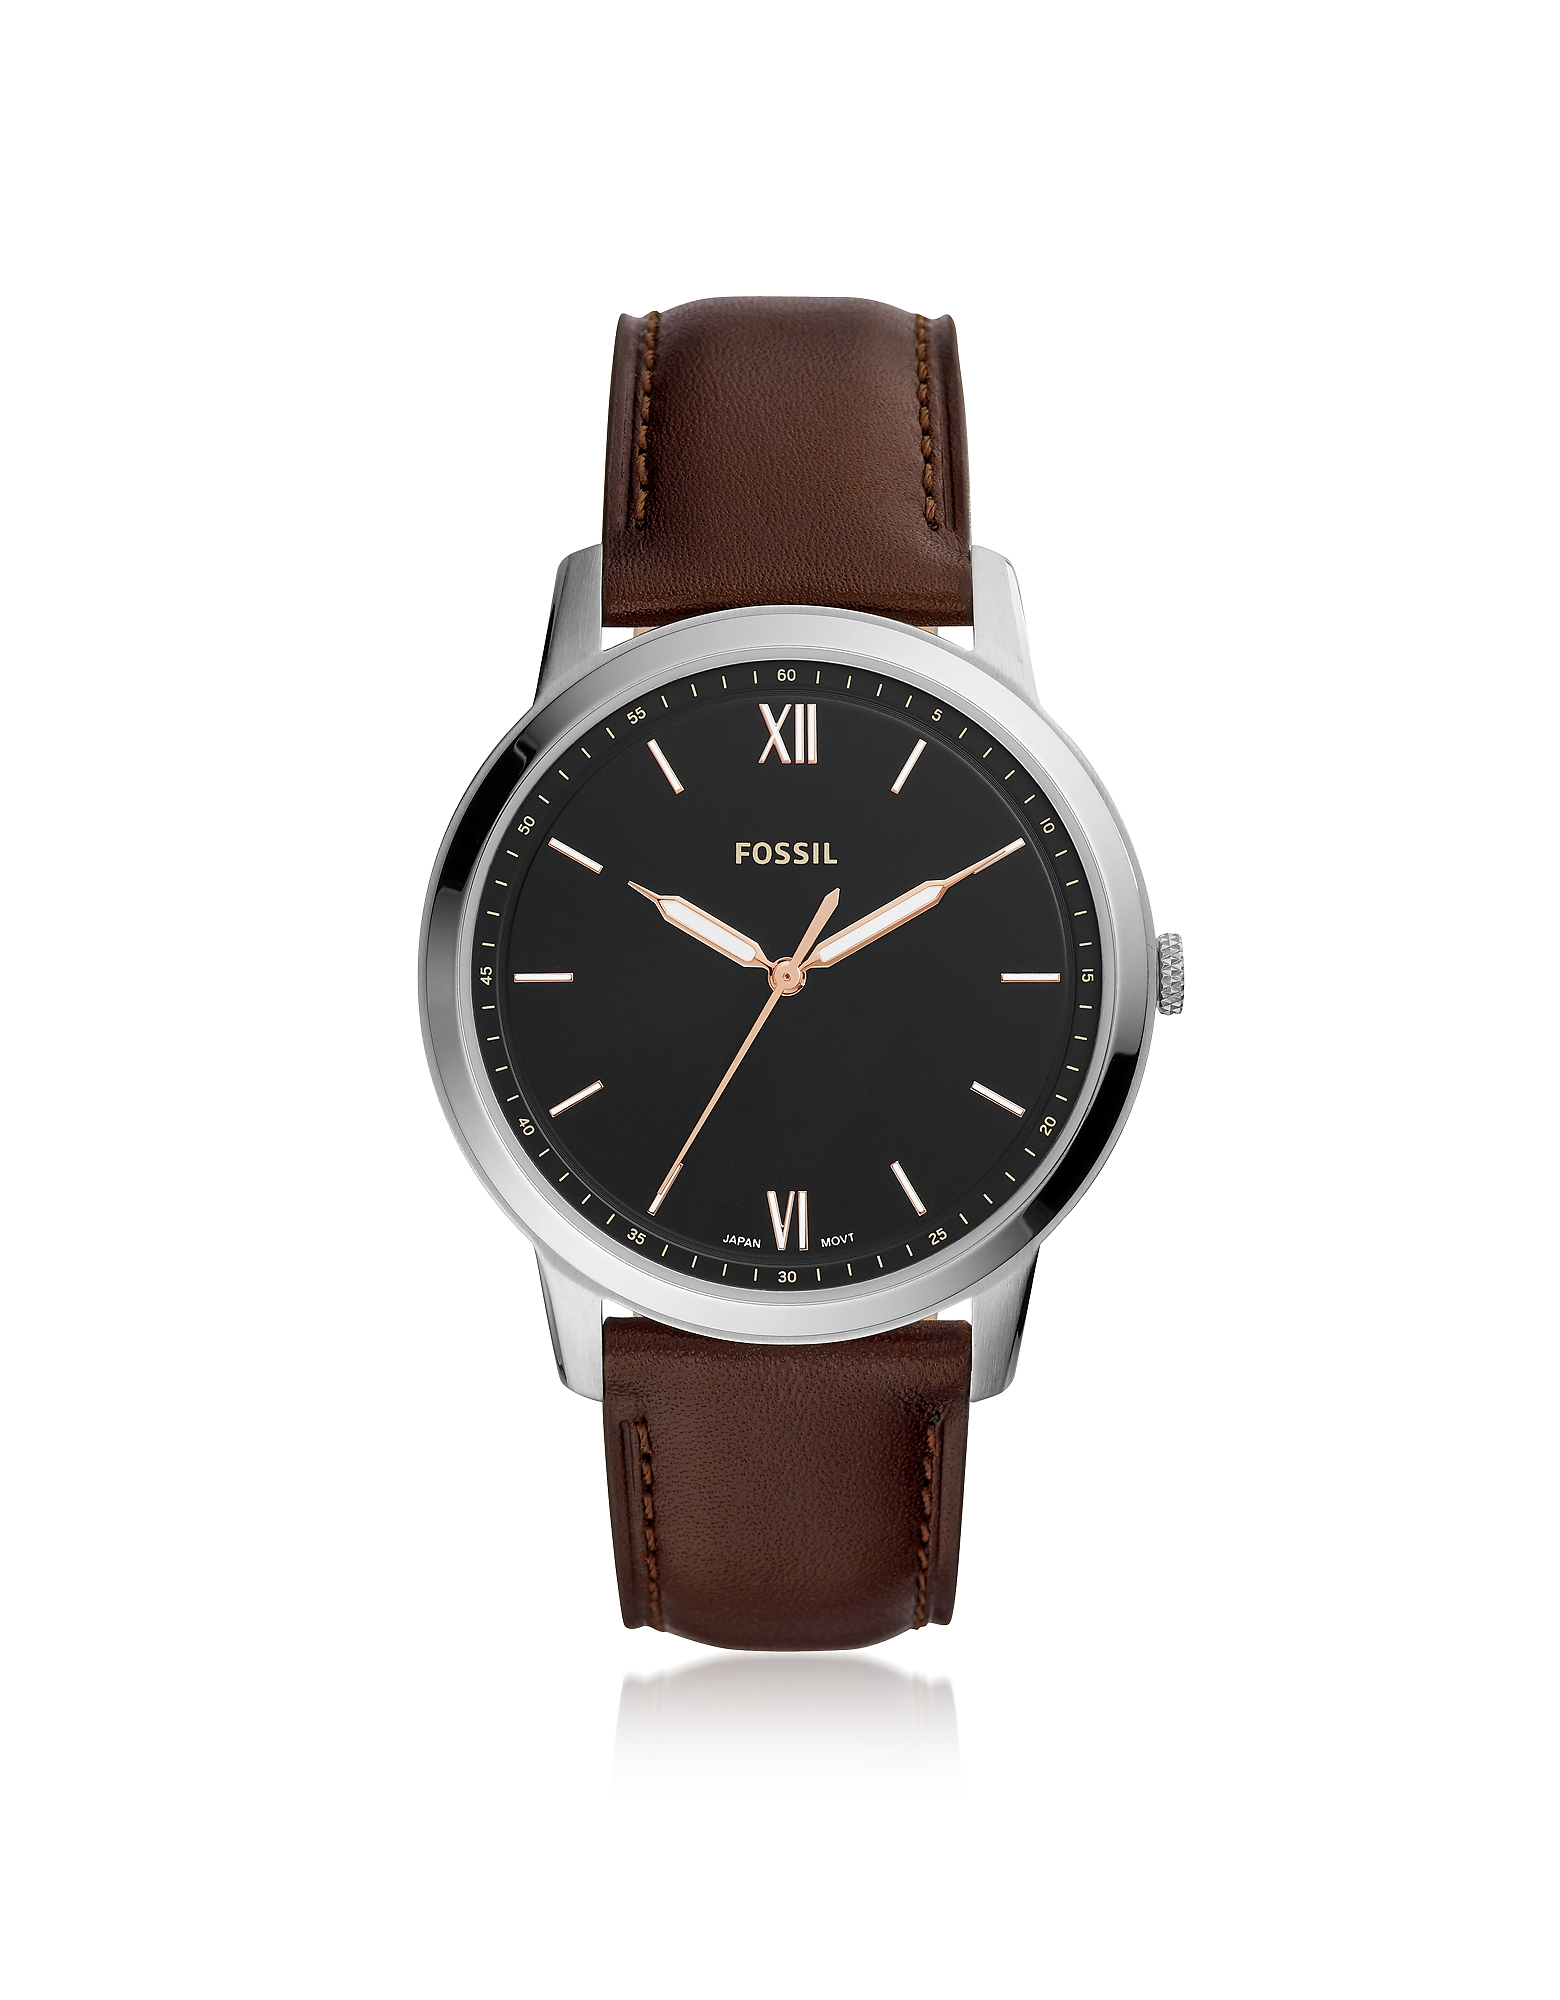 Fossil Men's Watches, The Minimalist Three-Hand Brown Leather Watch